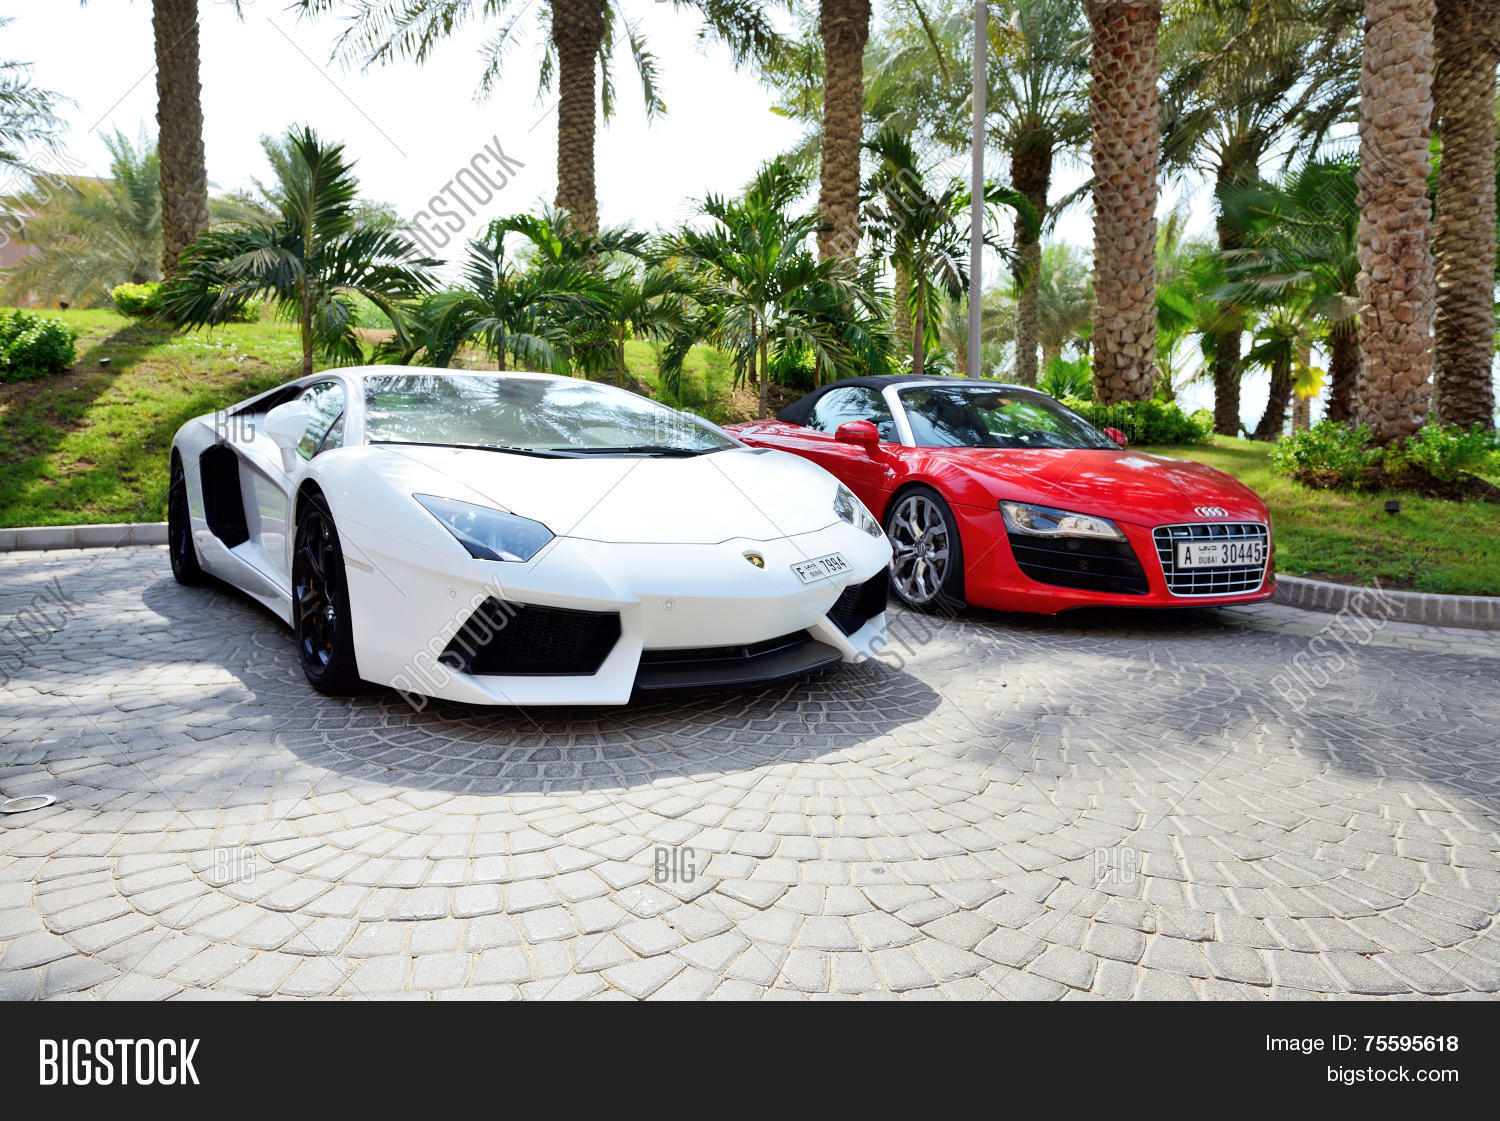 Dubai, Uae   September 11: The Atlantis The Palm Hotel And Luxury Sport Cars